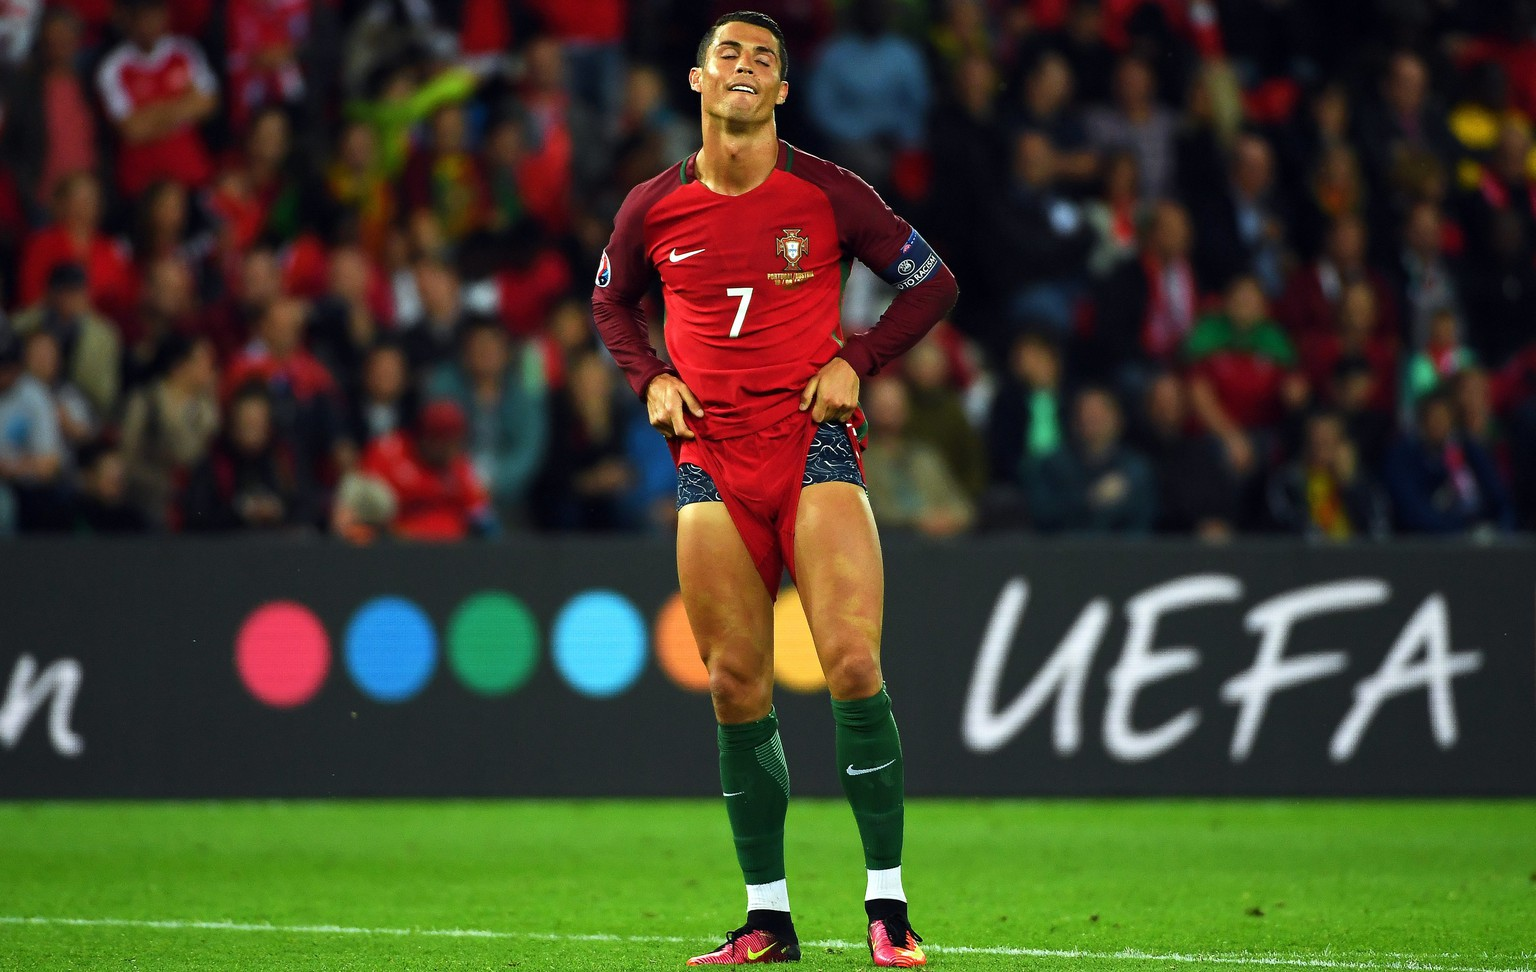 epa05376404 Cristiano Ronaldo of Portugal reacts after missing a penalty during the UEFA EURO 2016 group F preliminary round match between Portugal and Austria at Parc des Princes in Paris, France, 18 June 2016.